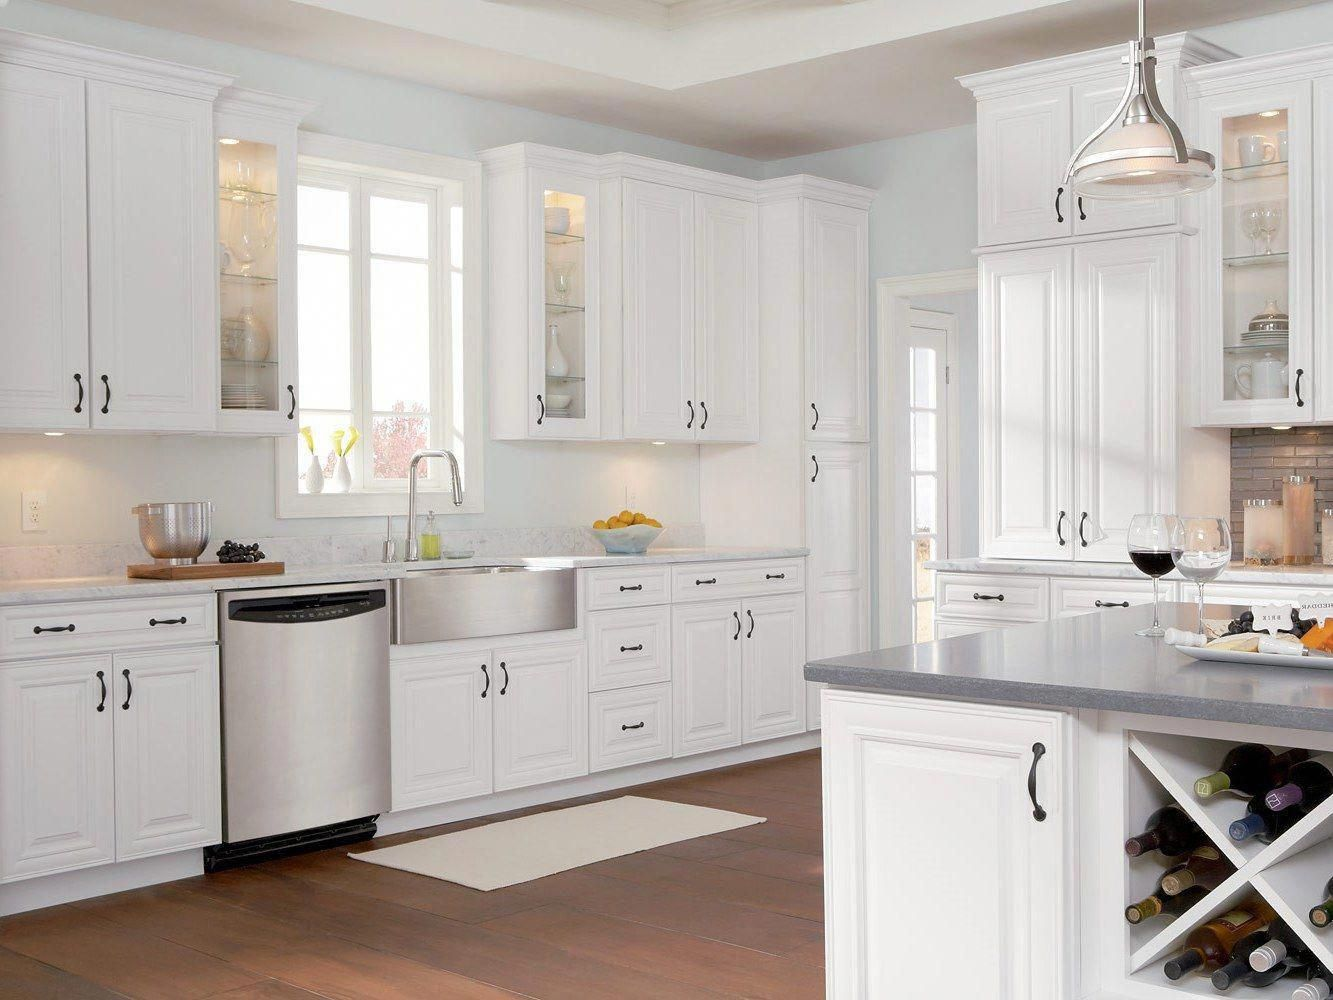 2019 kitchen cabinet trends and diy paint kitchen cabinets on best paint for kitchen cabinets diy id=86842